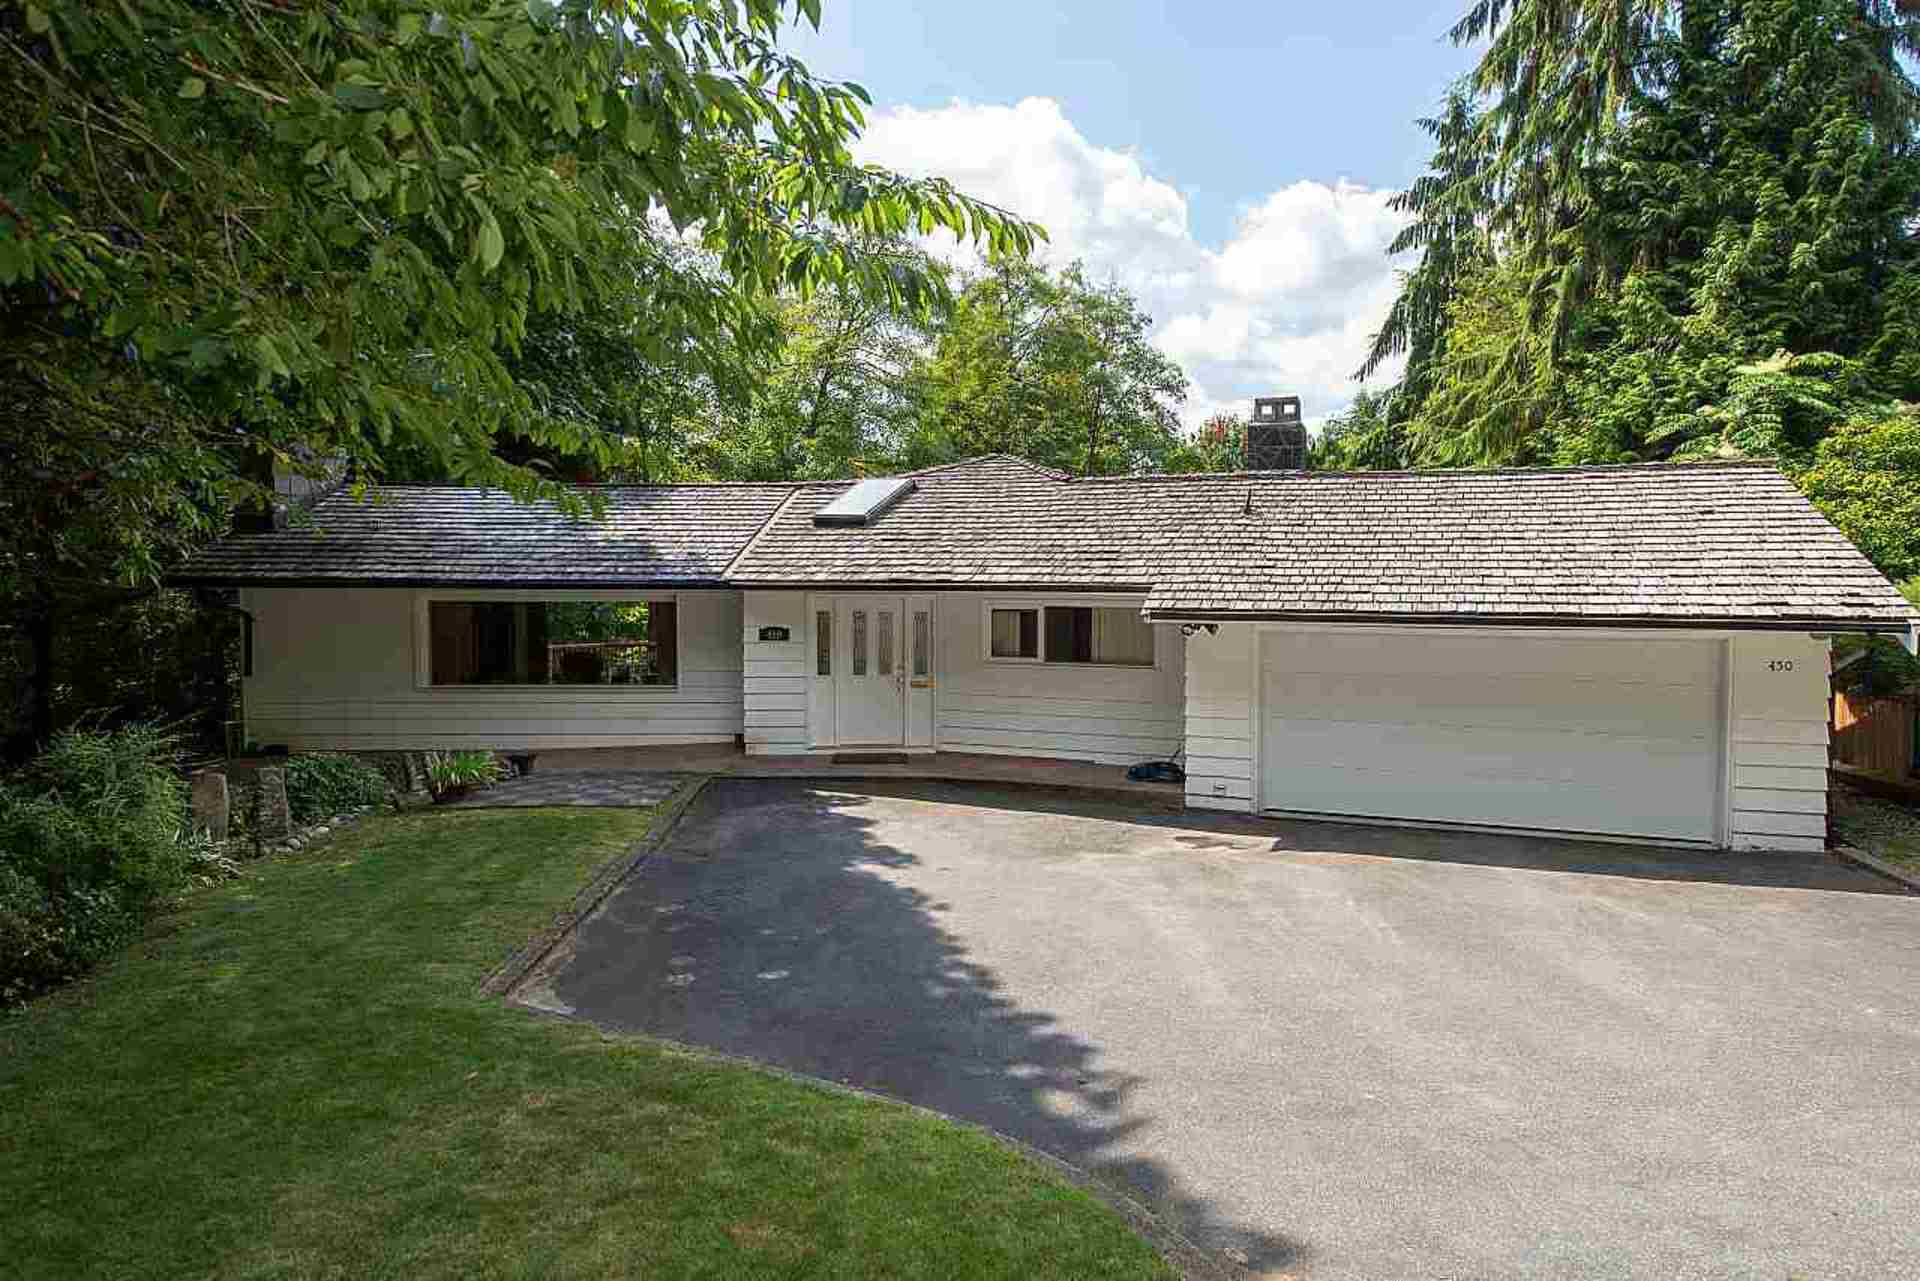 450-macbeth-crescent-cedardale-west-vancouver-01 at 450 Macbeth Crescent, Cedardale, West Vancouver